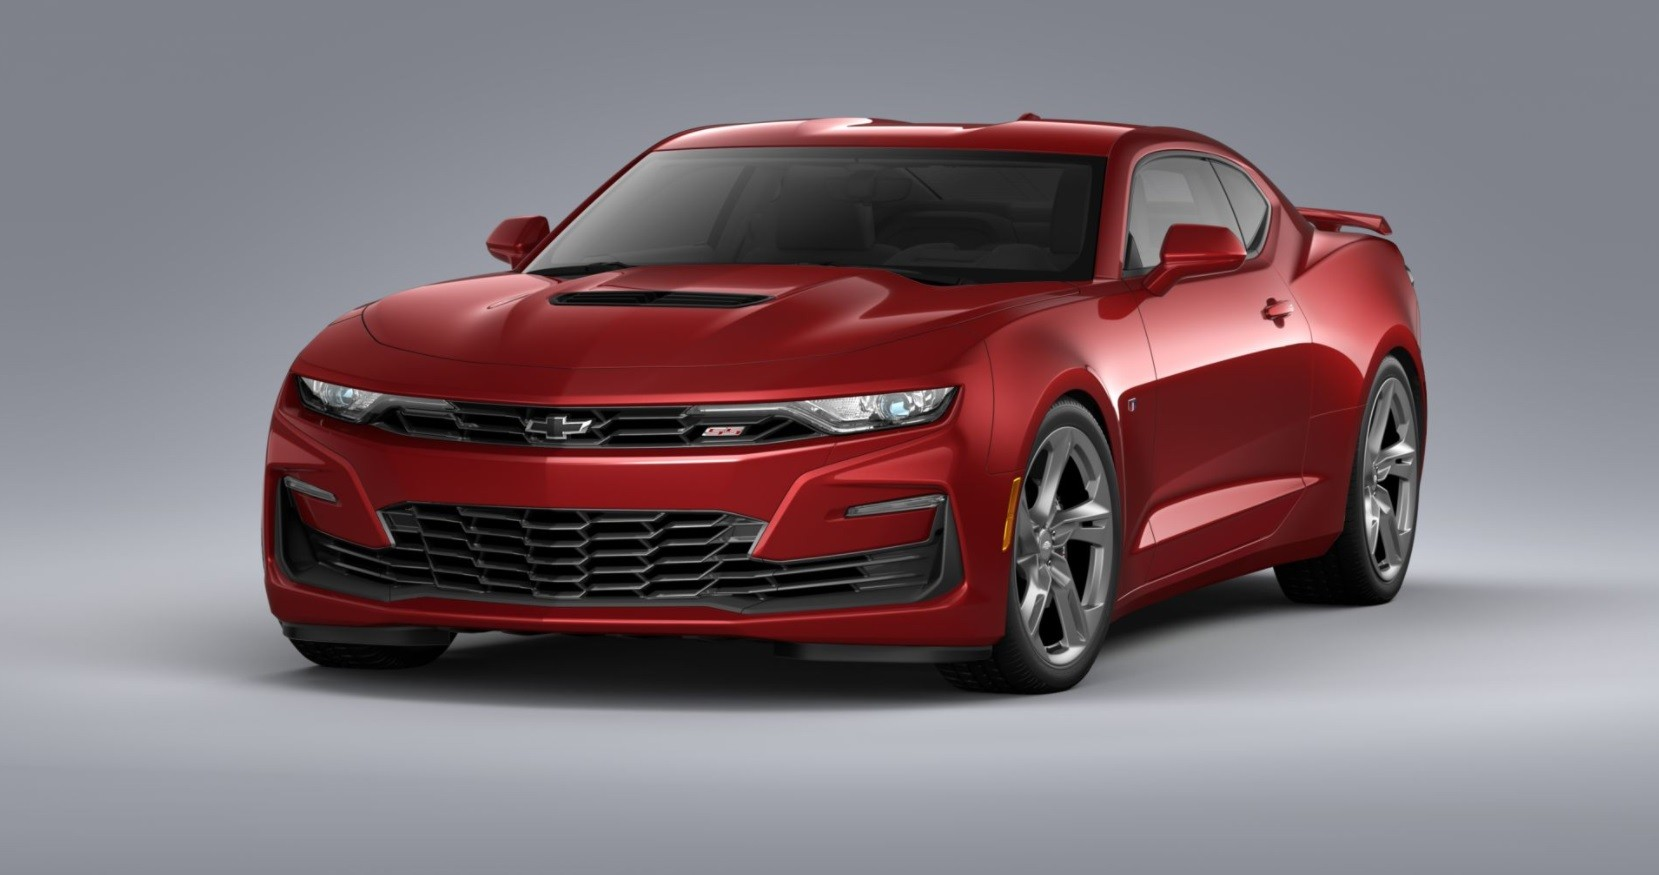 2021 Chevrolet Camaro Configurator Goes Live Starting